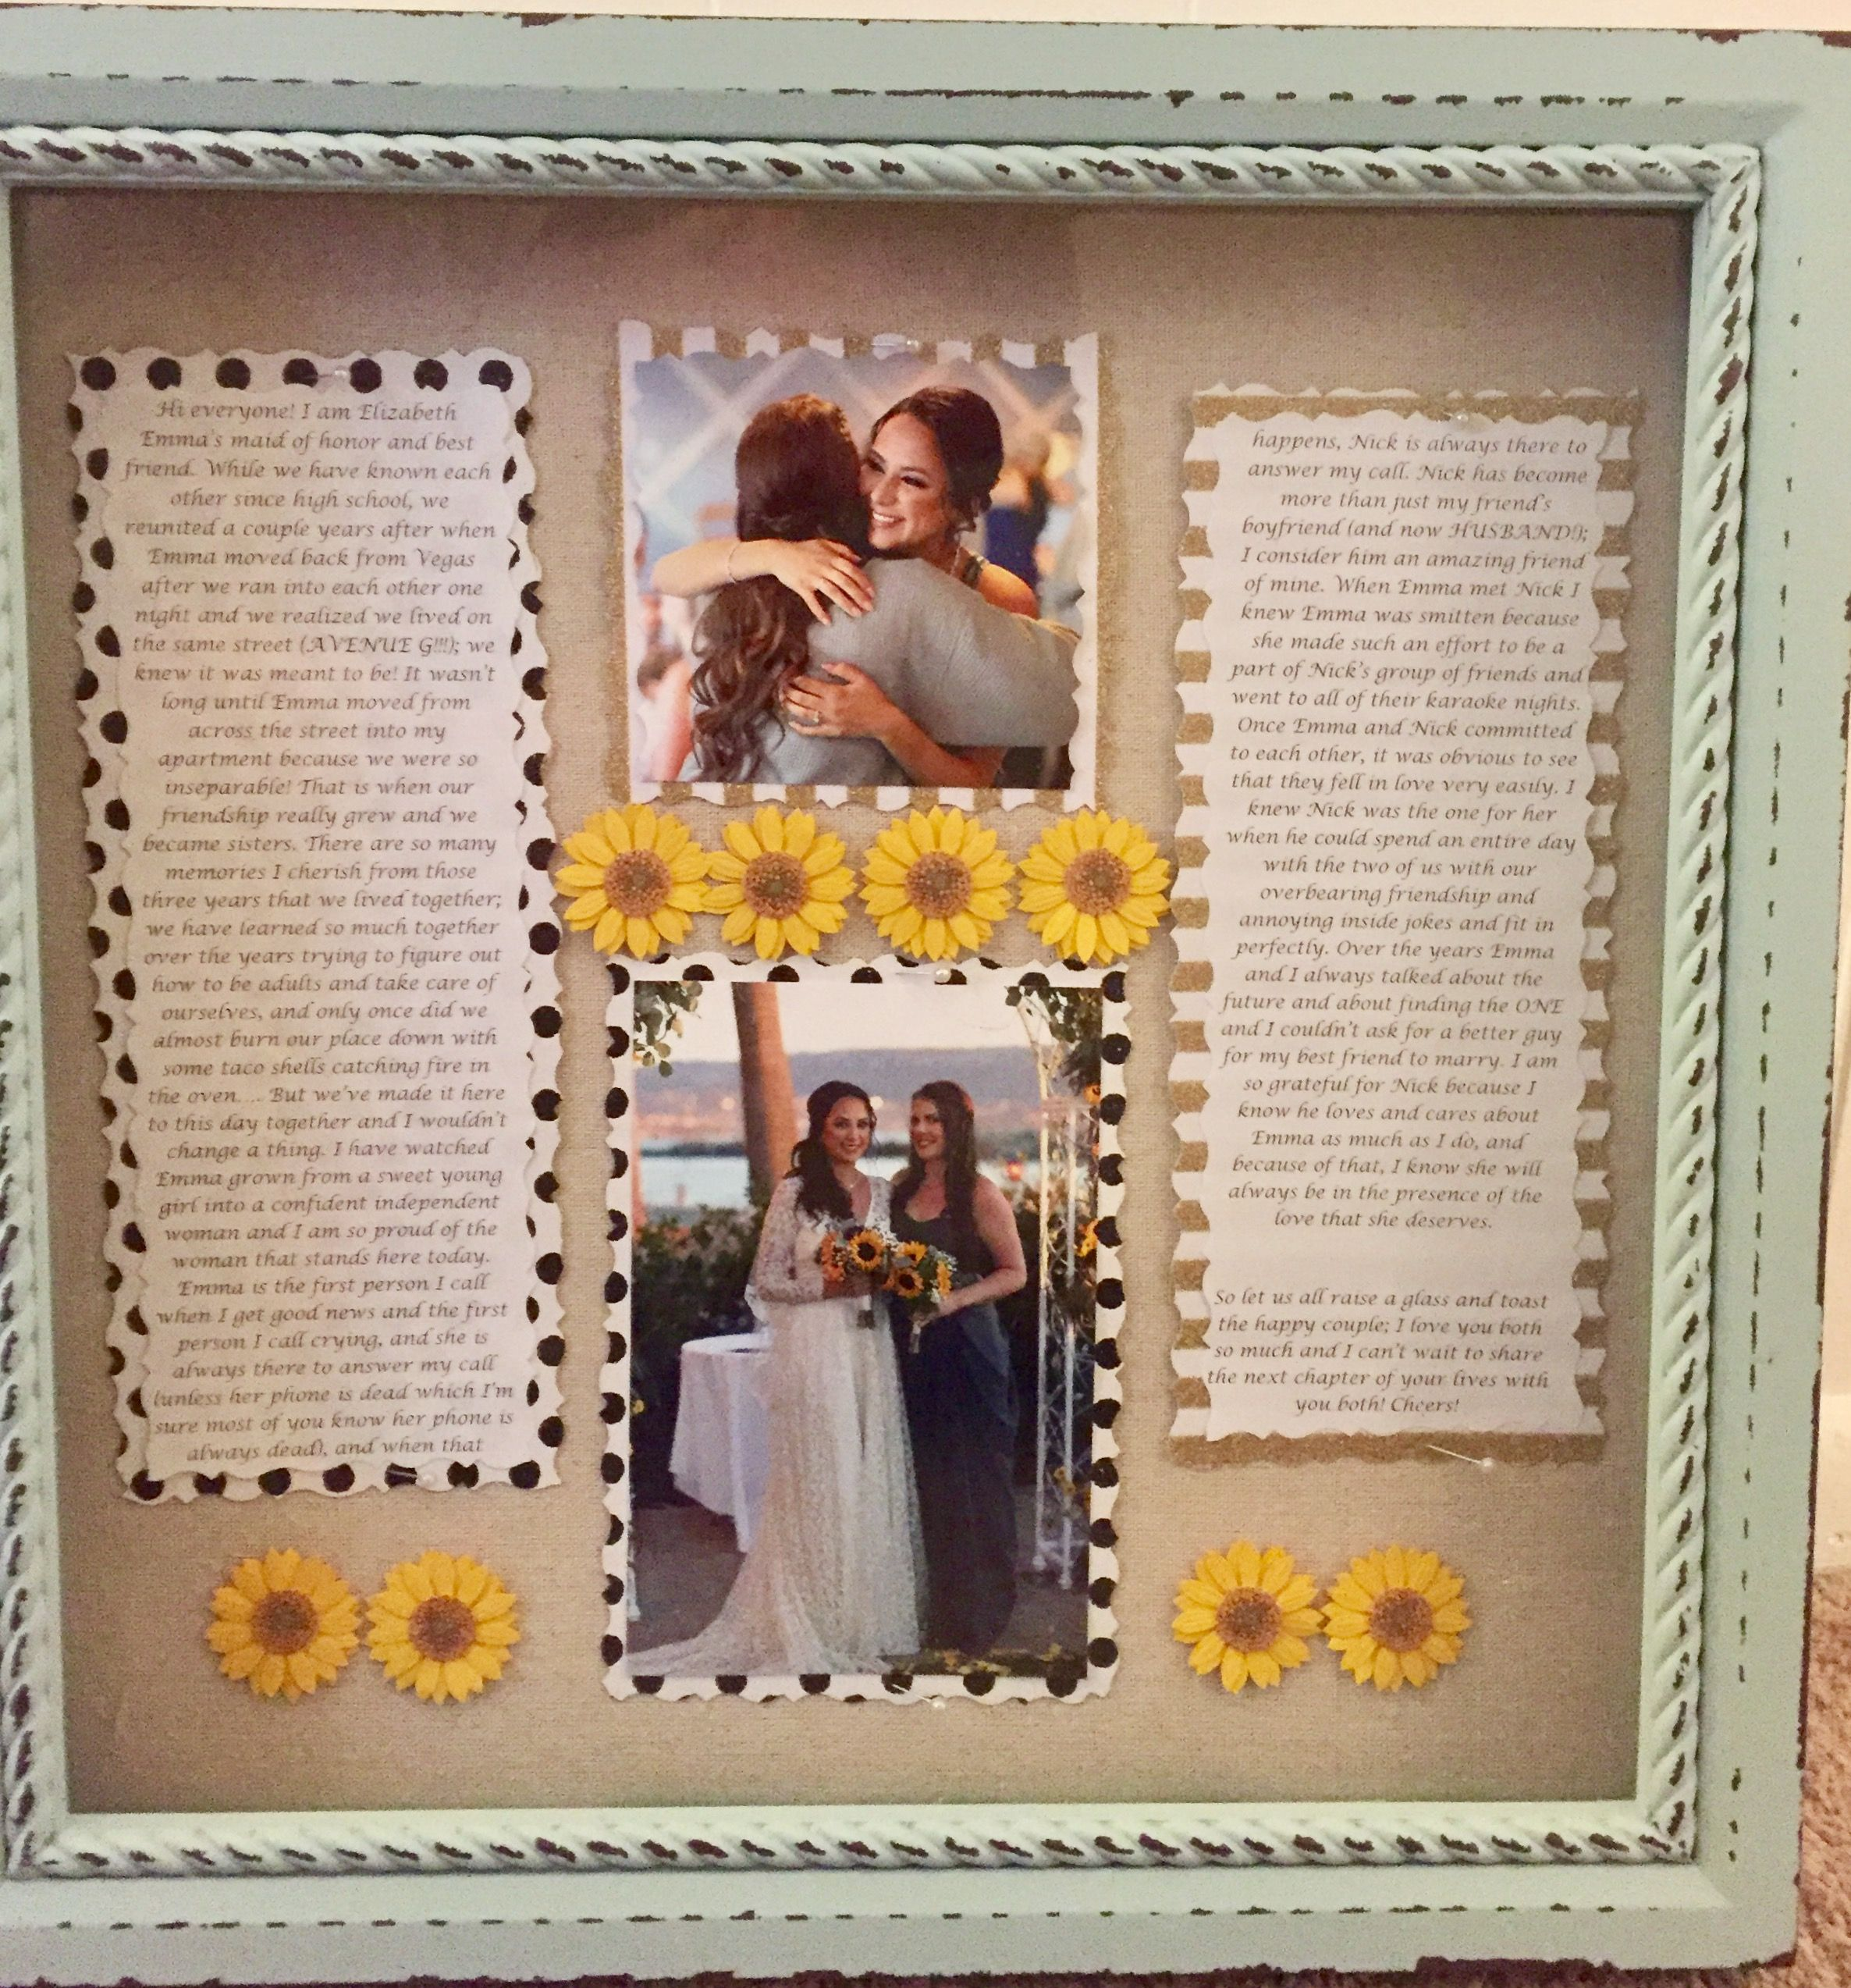 Picture frame i made for my sister with my maid of honor speech picture frame i made for my sister with my maid of honor speech surrounding a picture of us from her wedding day wedding pinterest maids weddings and jeuxipadfo Choice Image